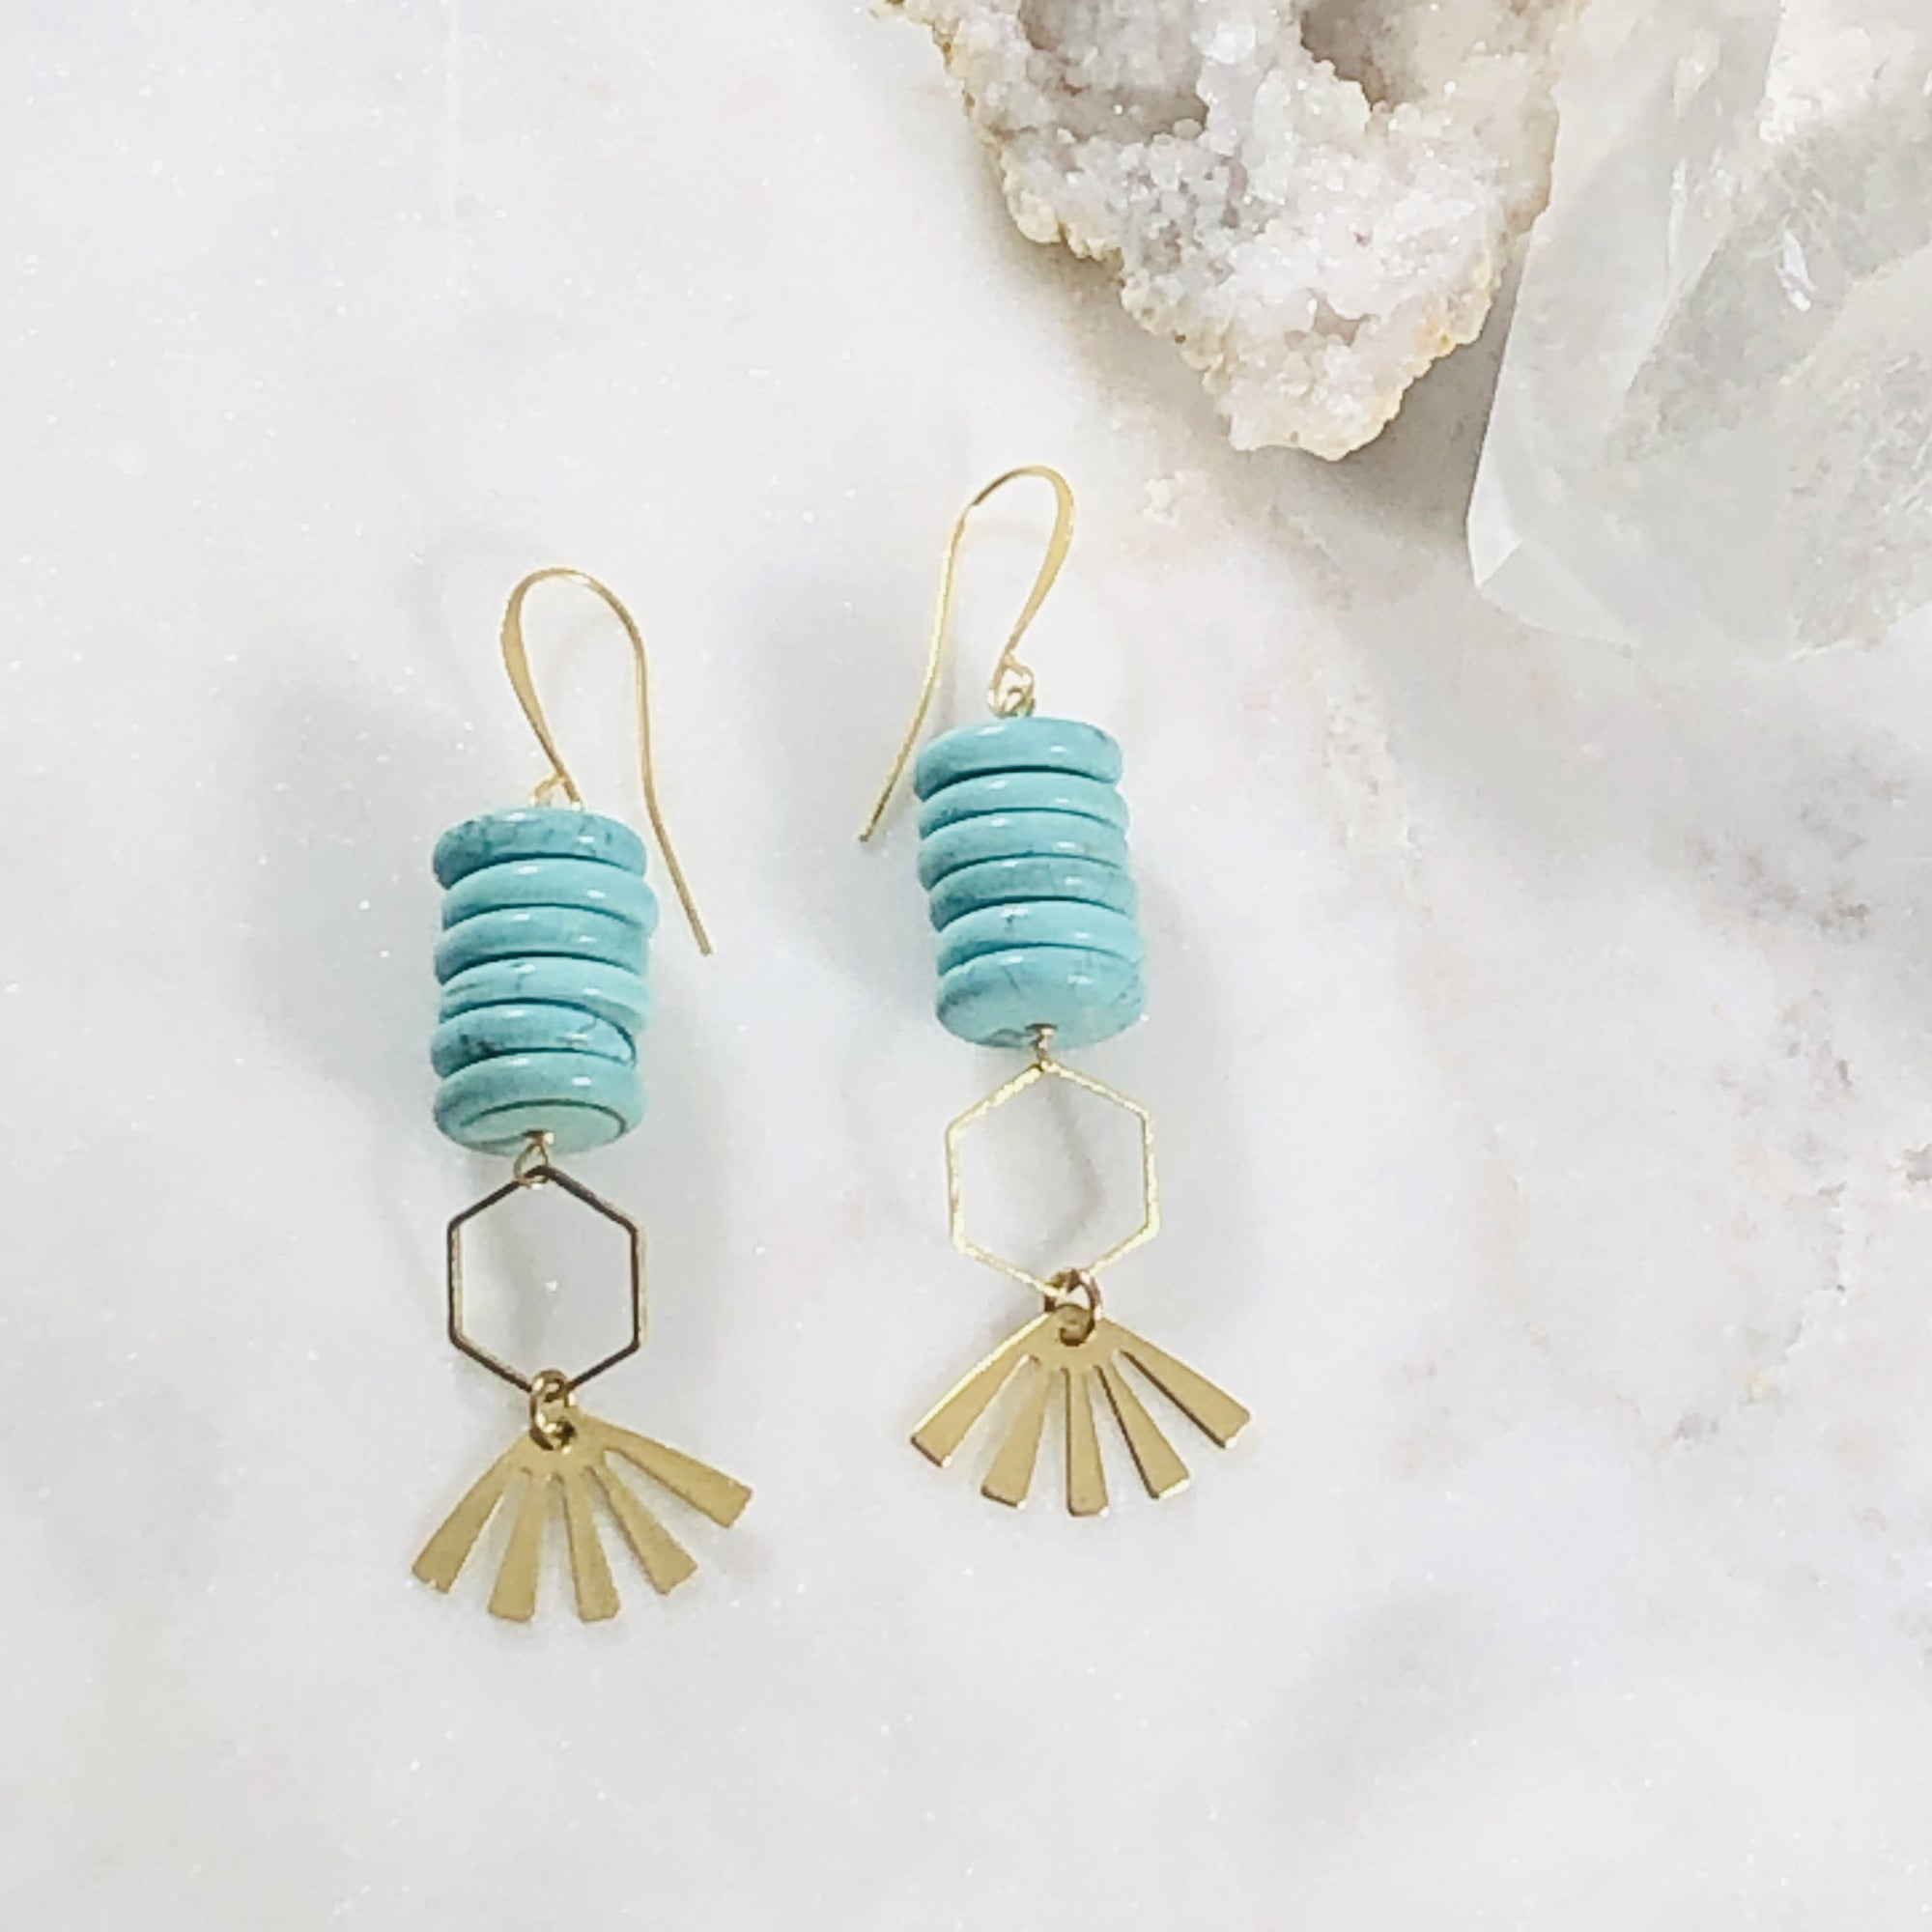 Handmade modern statement earrings with turquoise howlite crystal healing vibes